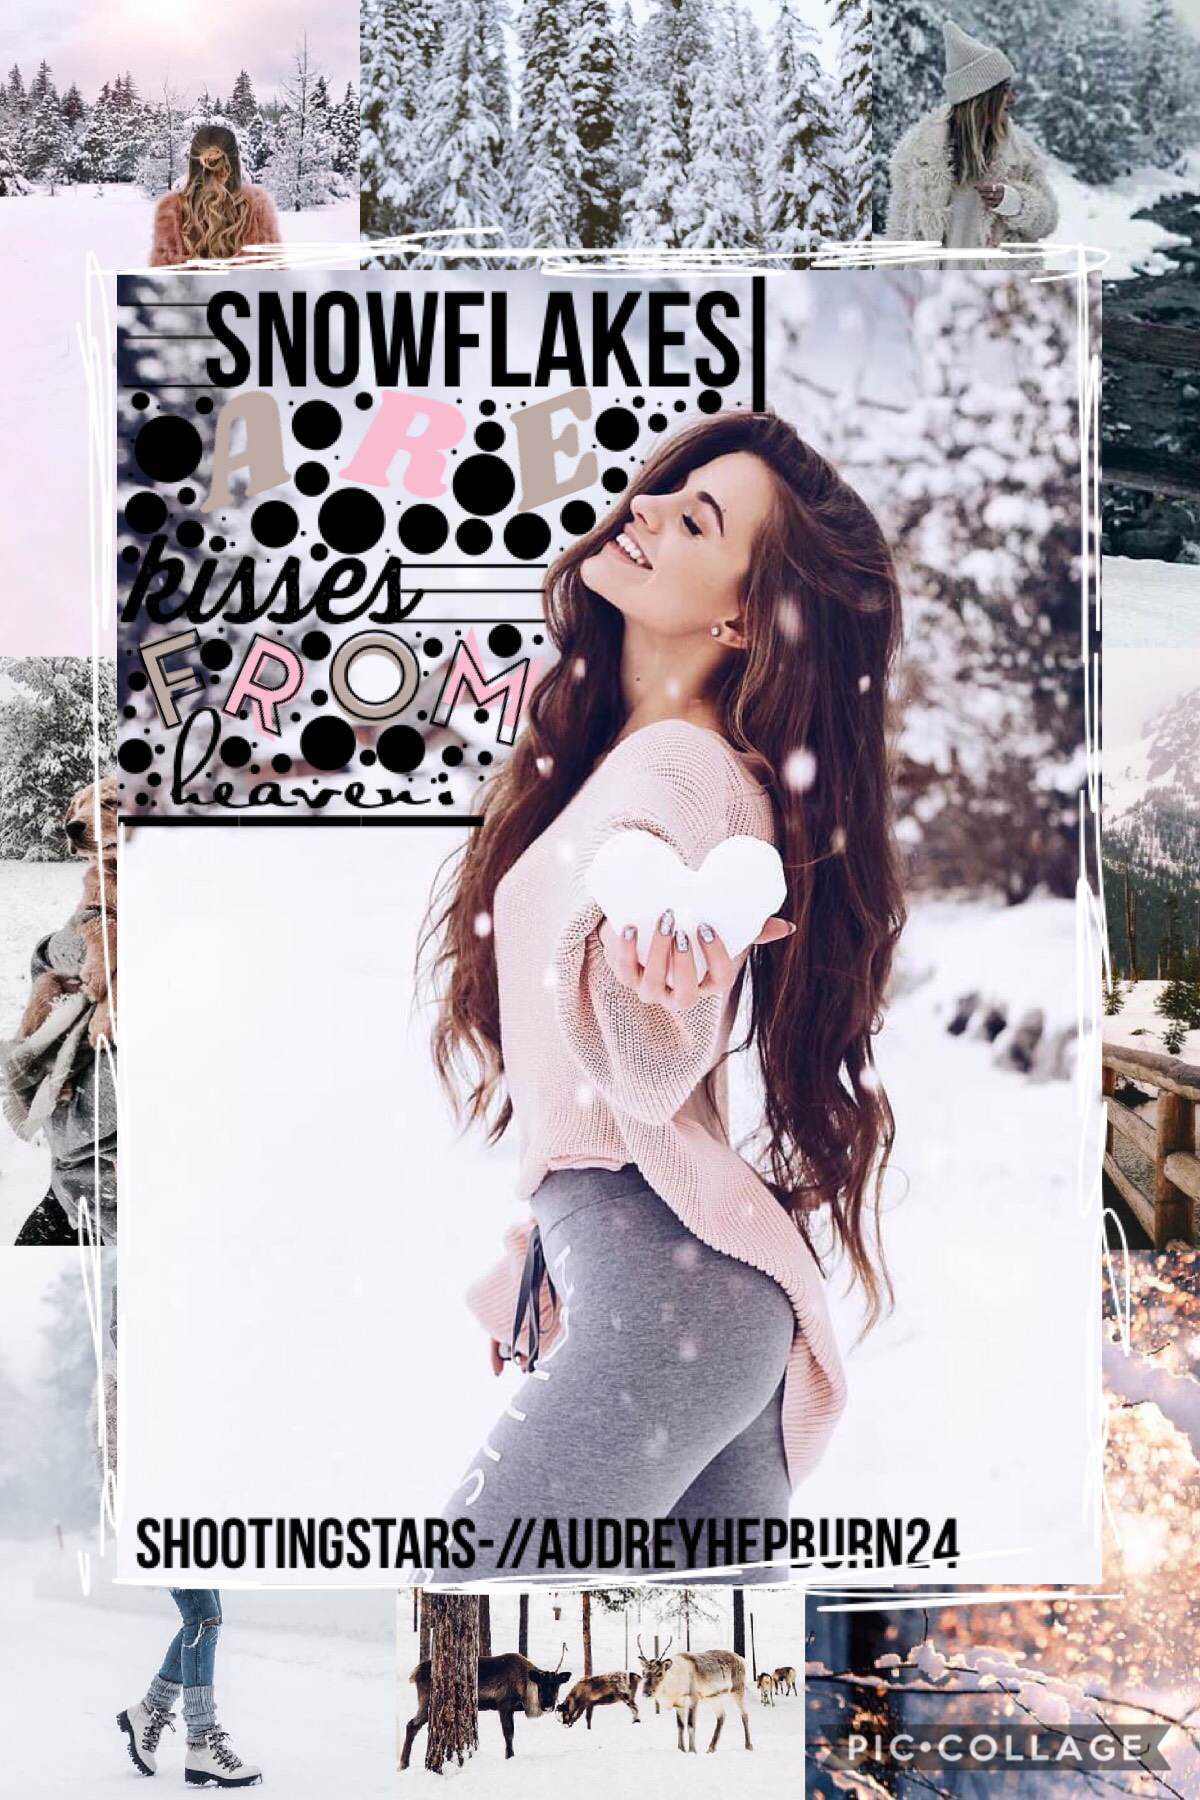 ❄️{31/55}Collab with the kindest (Tap)❄️ audreyhepburn24!!! GO FOLLOW HER! I put everything together and she chose the quote and backgrounds!! ❤️   Q// ❄️,🌸,🌞,or 🍂? A// ❄️!!!